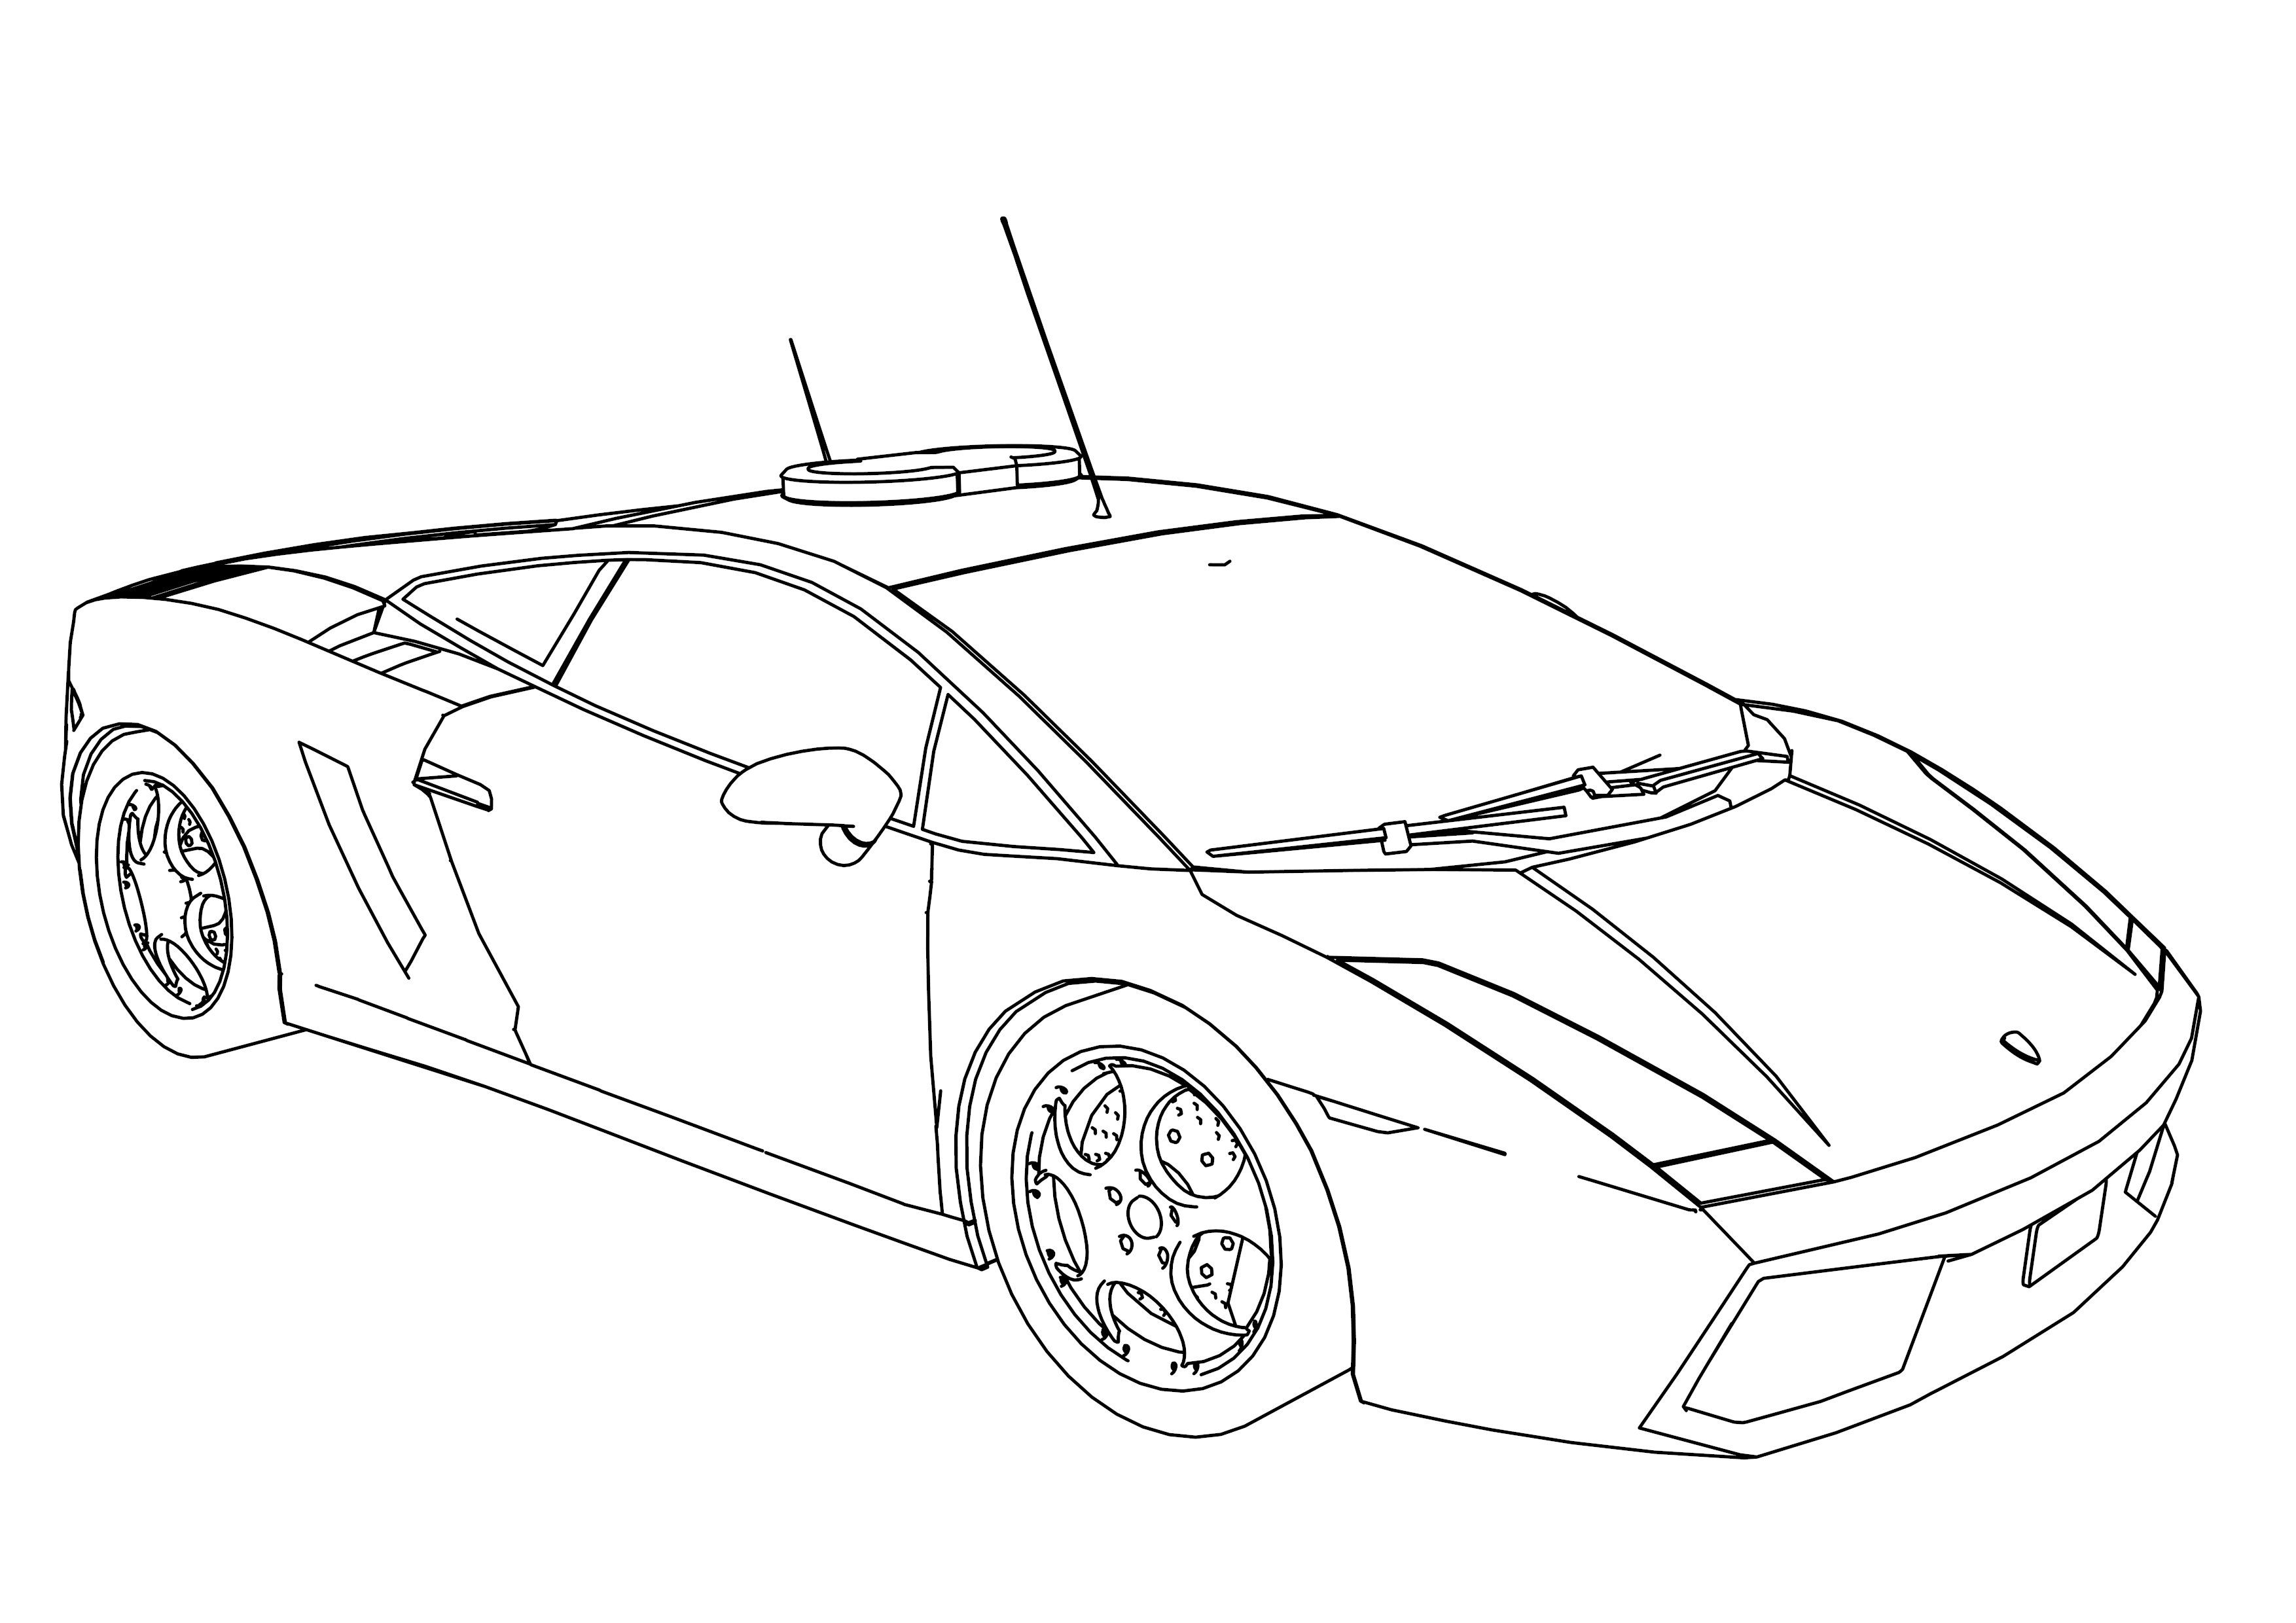 Police Car Coloring Pages Cars Coloring Pages Truck Coloring Pages Monster Truck Coloring Pages